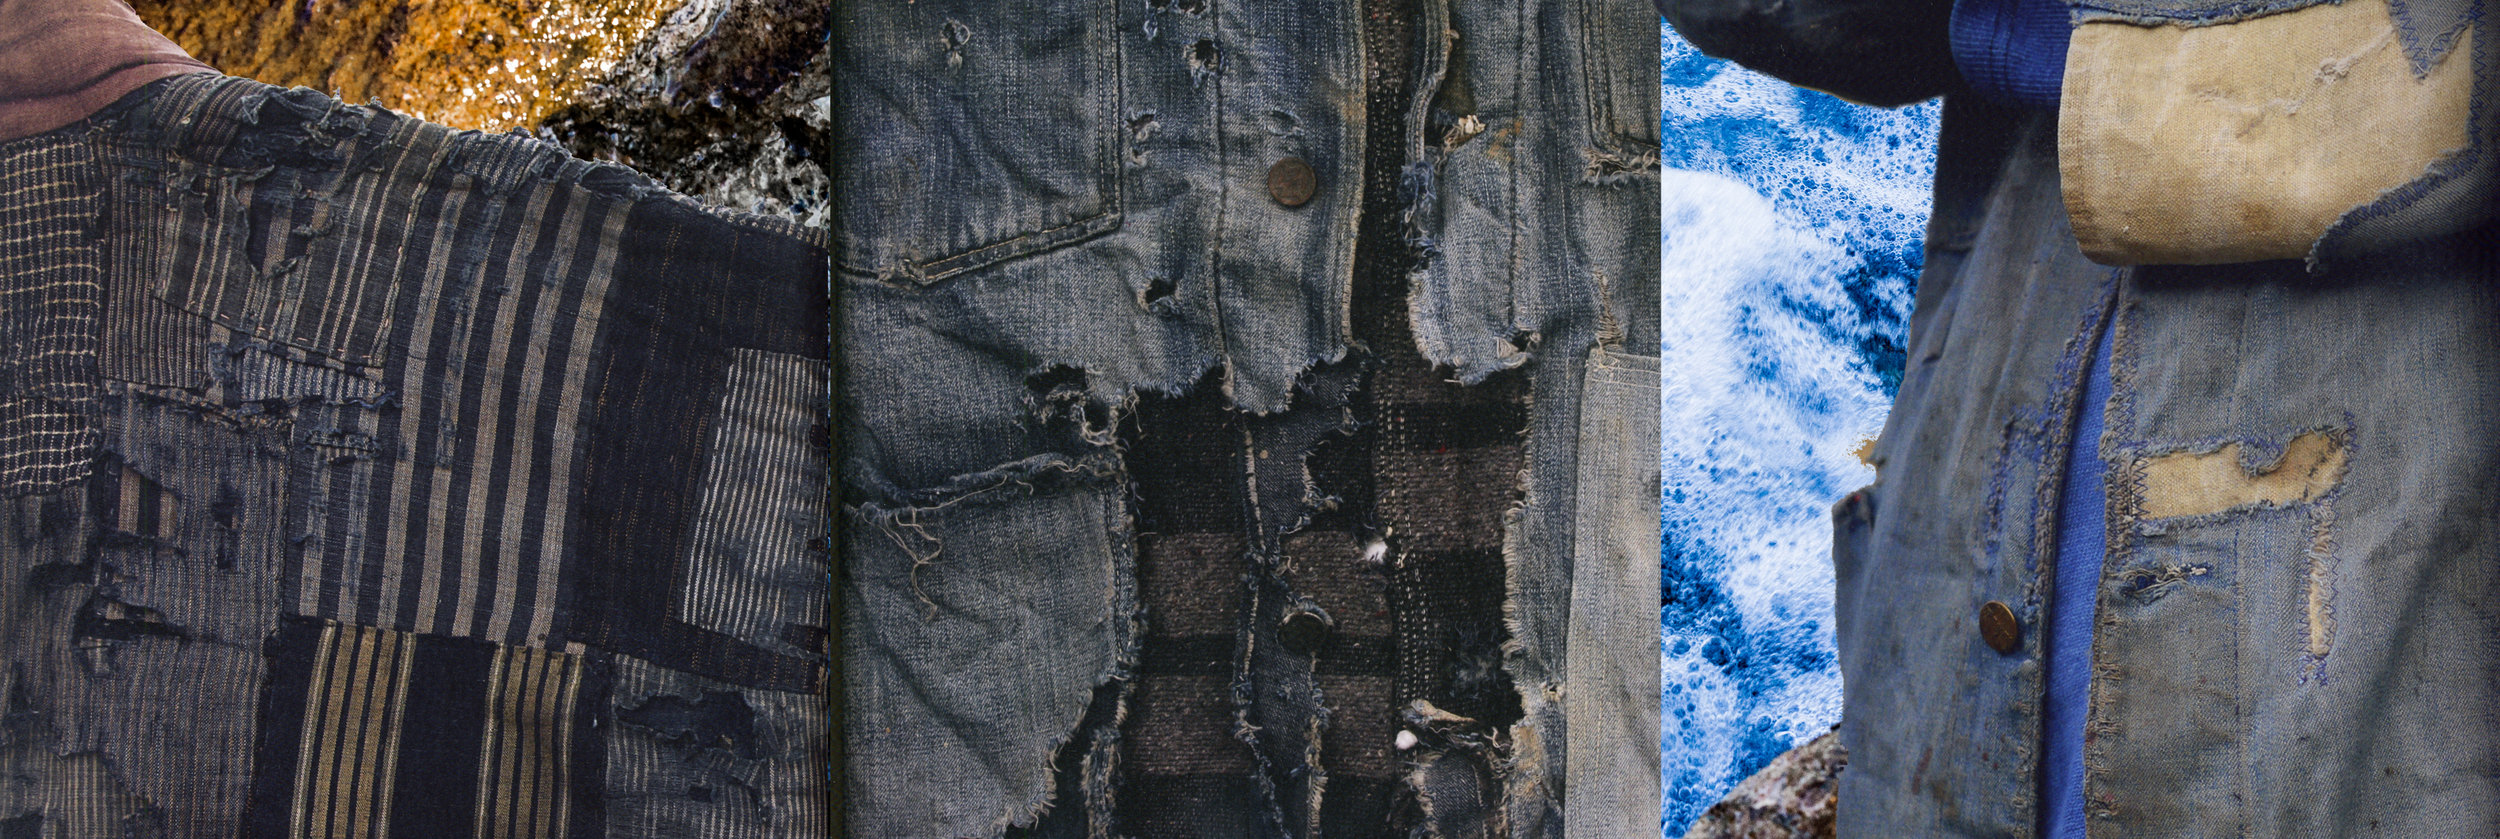 """Background image by Ela Stipicic 